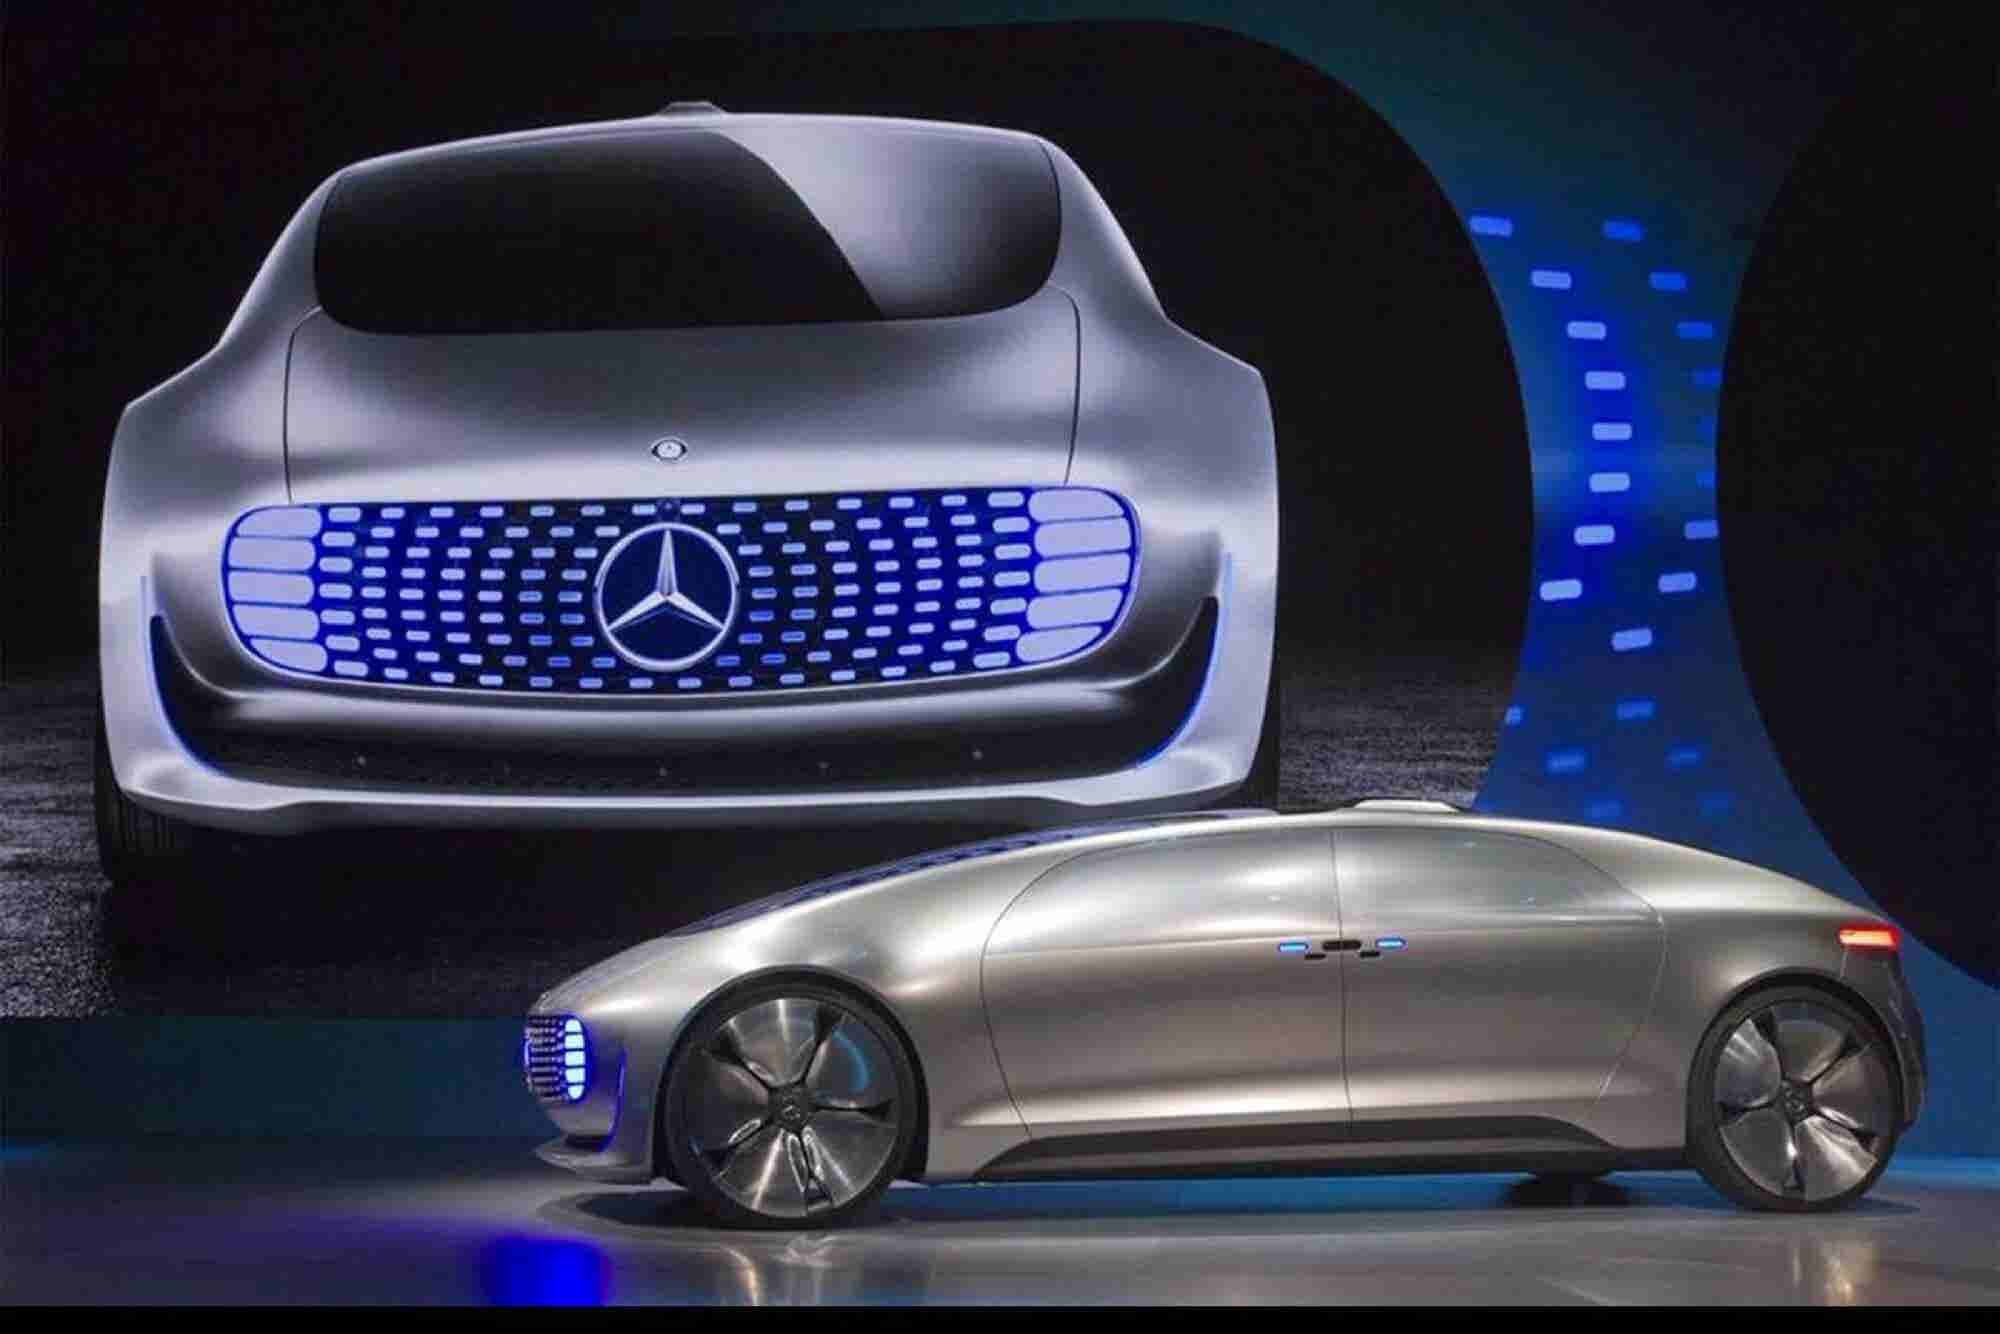 Mercedes' Self-Driving Car Says Hello to San Francisco